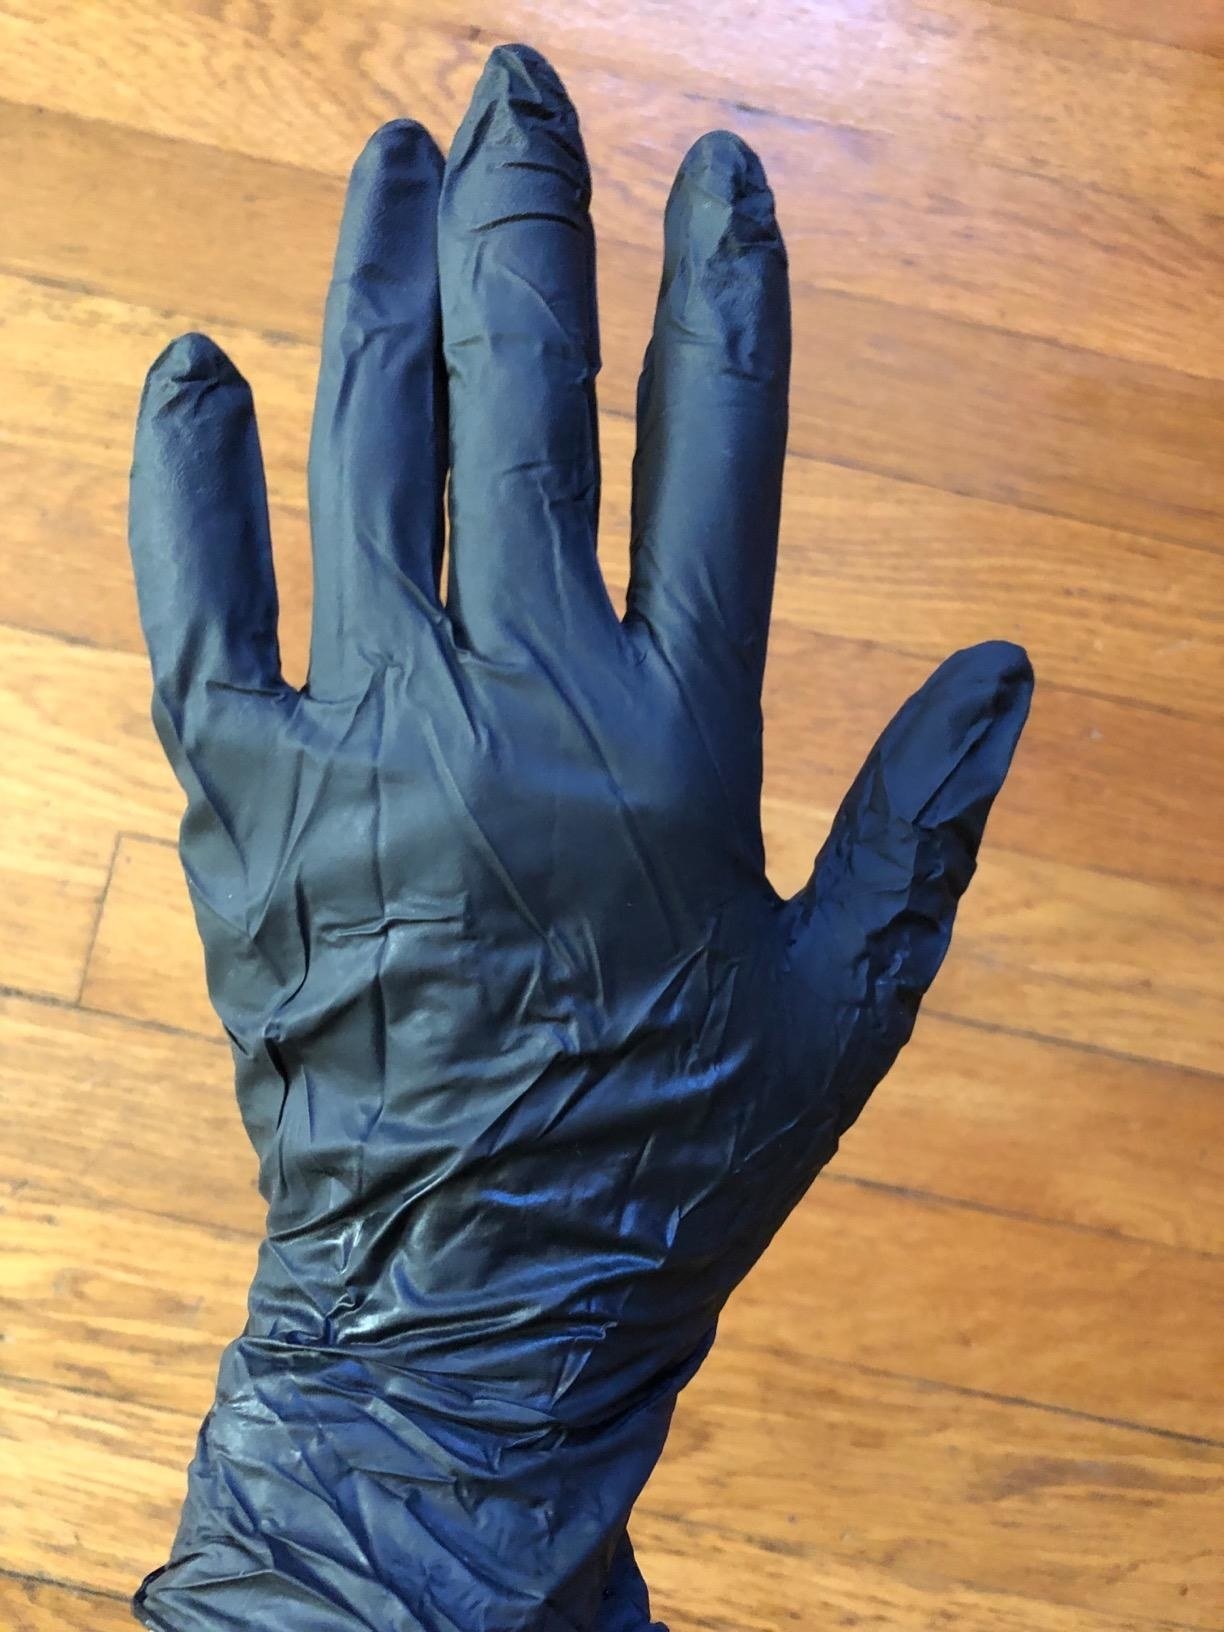 a reviewer's hand in the black glove